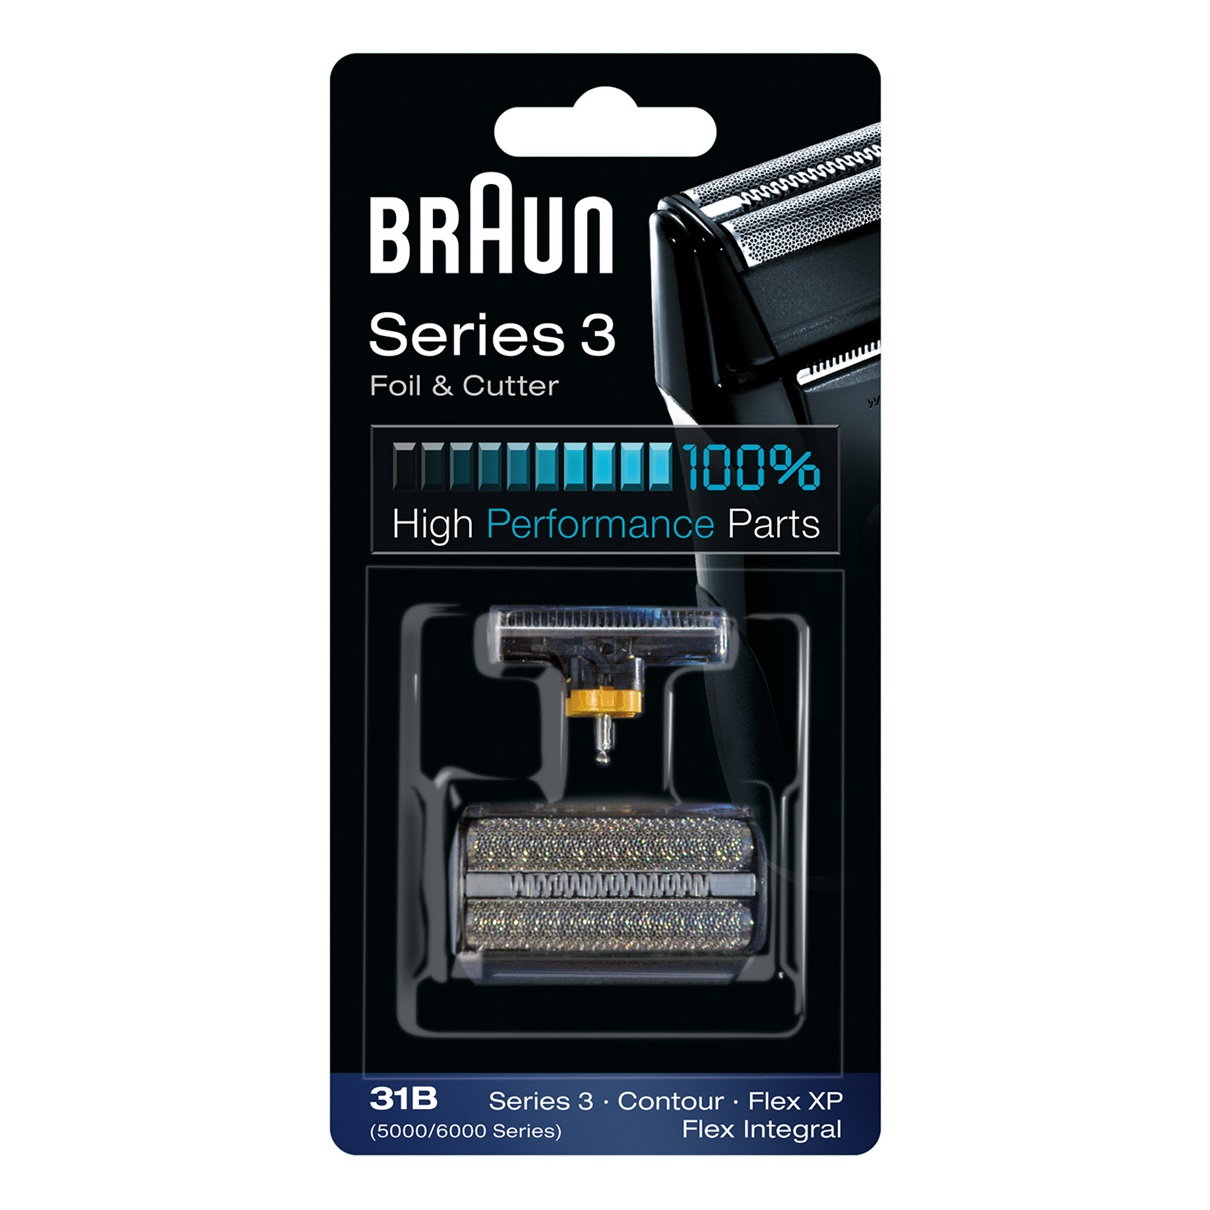 Braun Series 3 Combi 31b Foil and Cutter Replacement pack